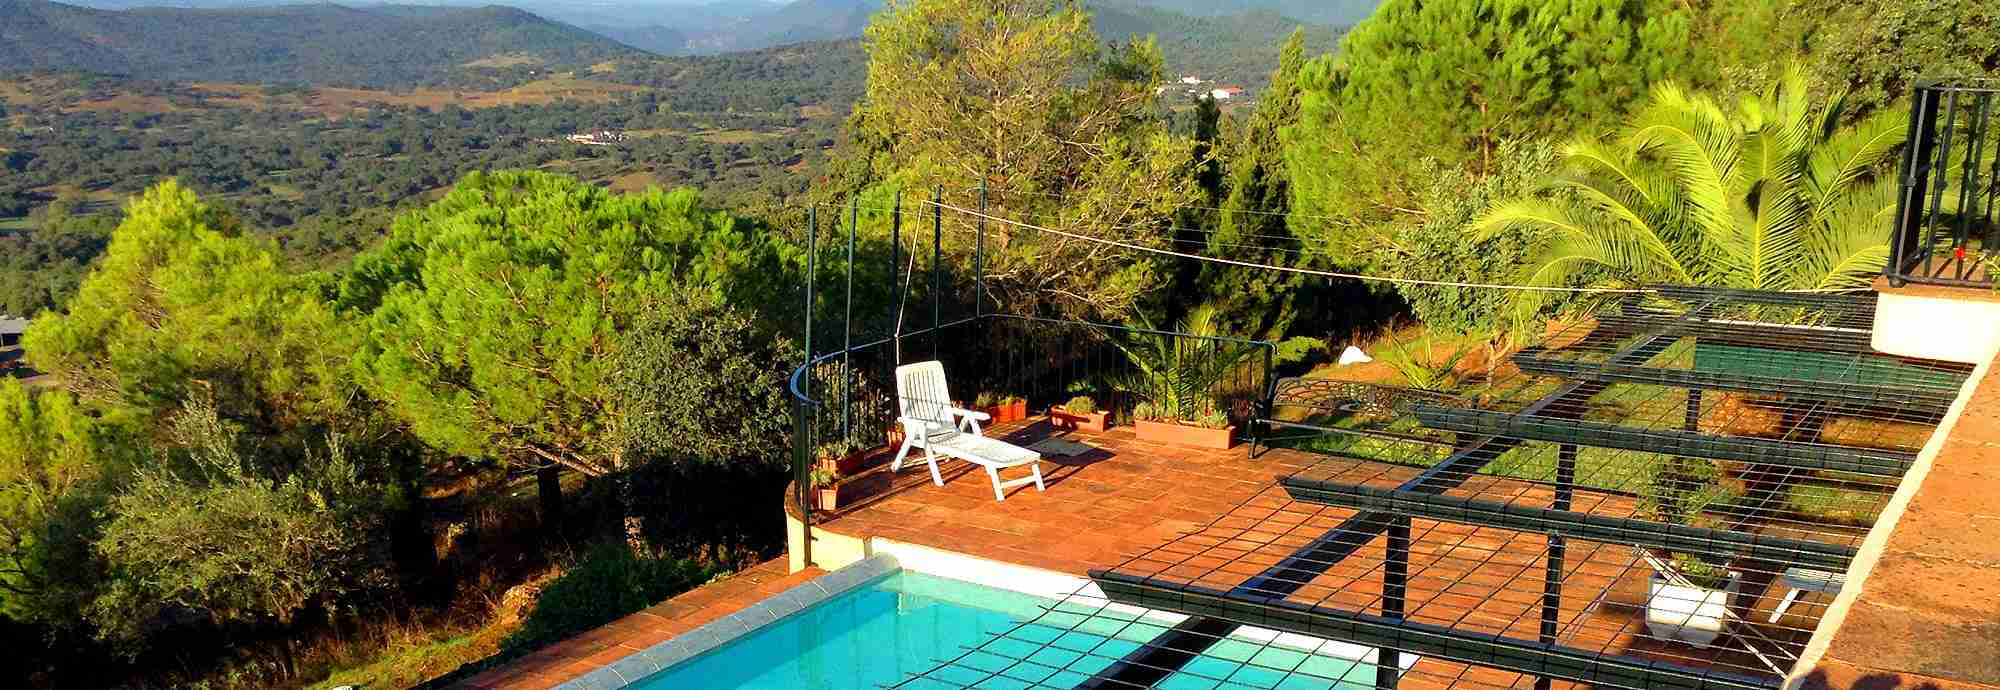 Private villa with pool and lovely views in Aracena, Spain